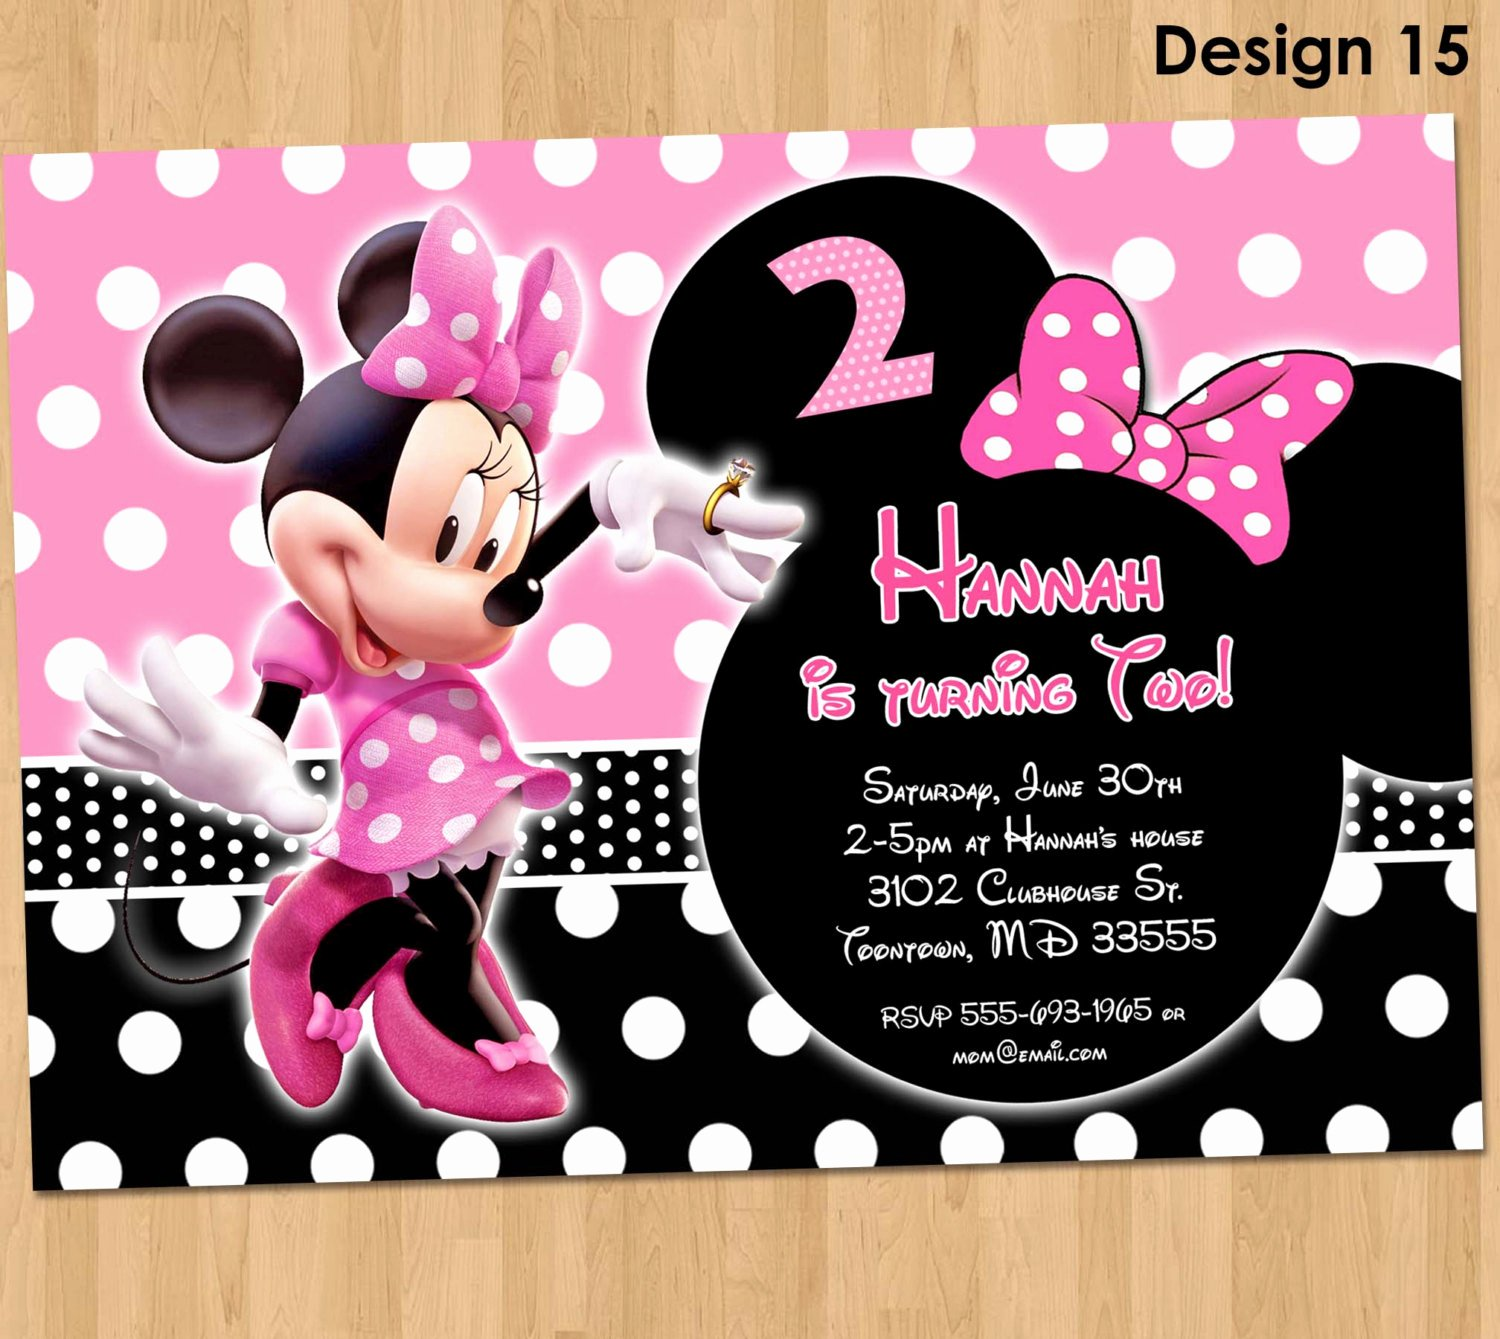 Minnie Mouse Party Invitations Beautiful Minnie Mouse Invitation Minnie Mouse Birthday Invitation